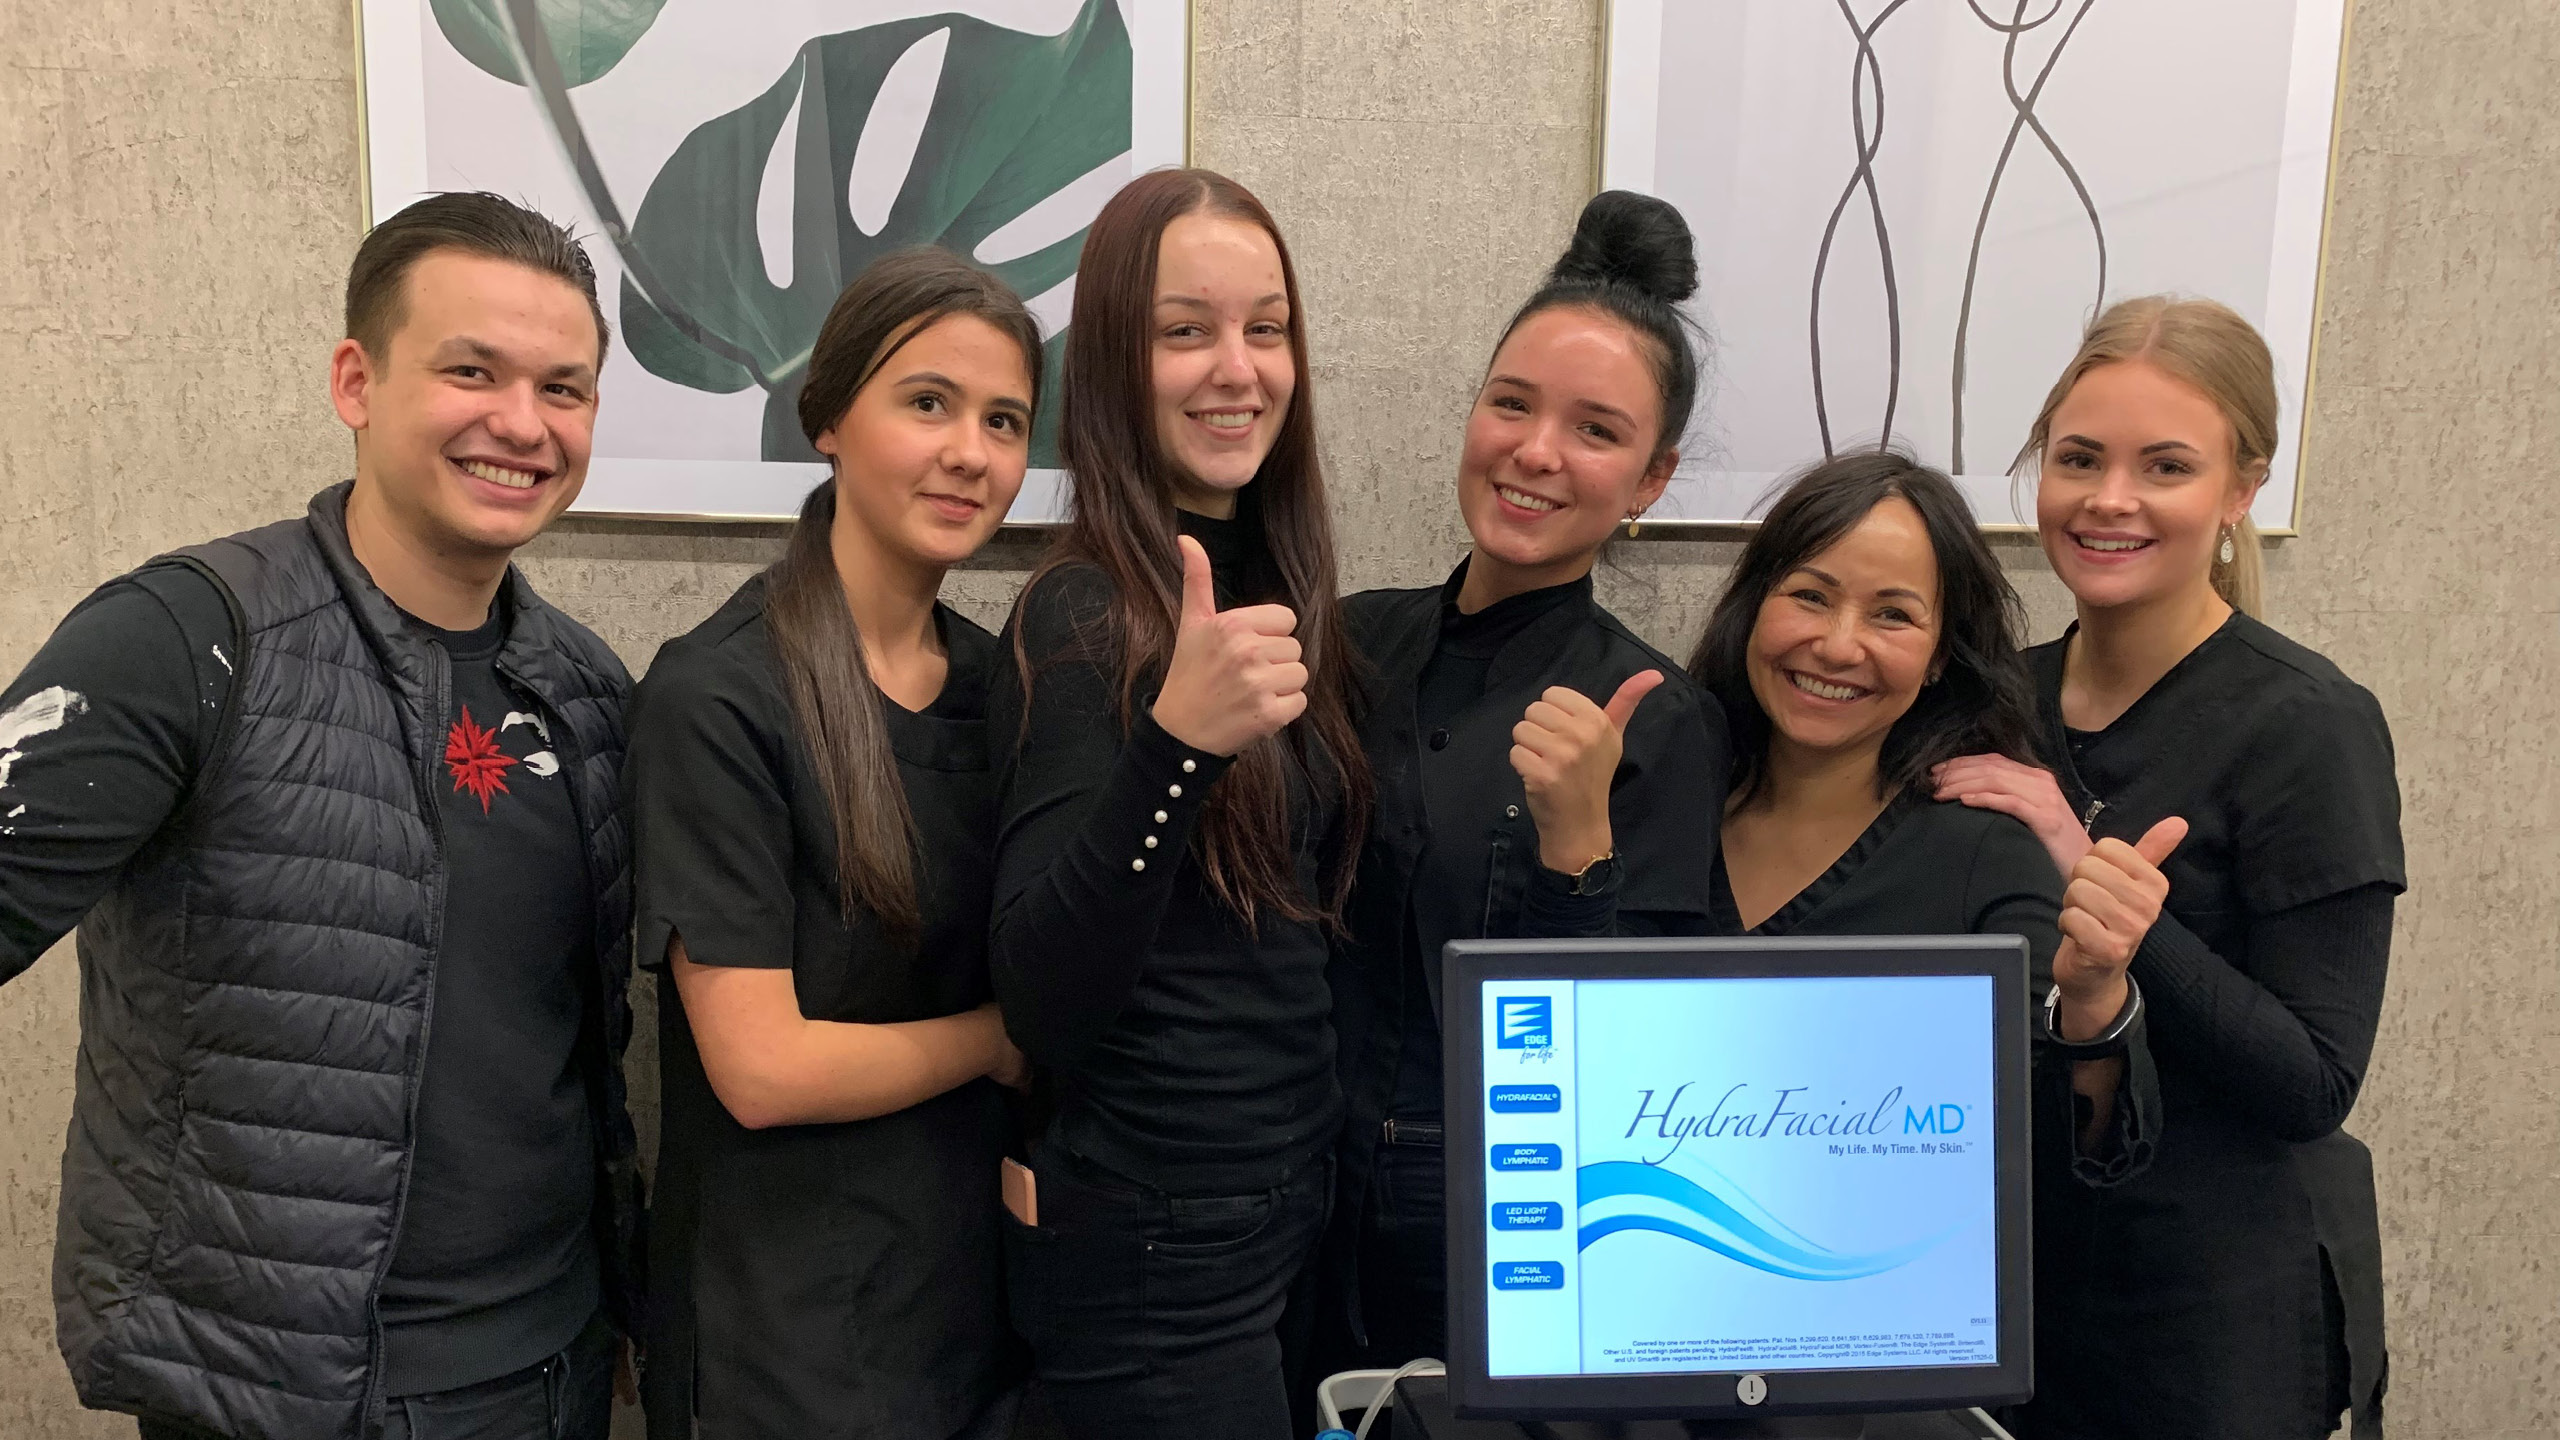 Welkom in de HydraFacial familie, Body Design Group uit Maastricht!